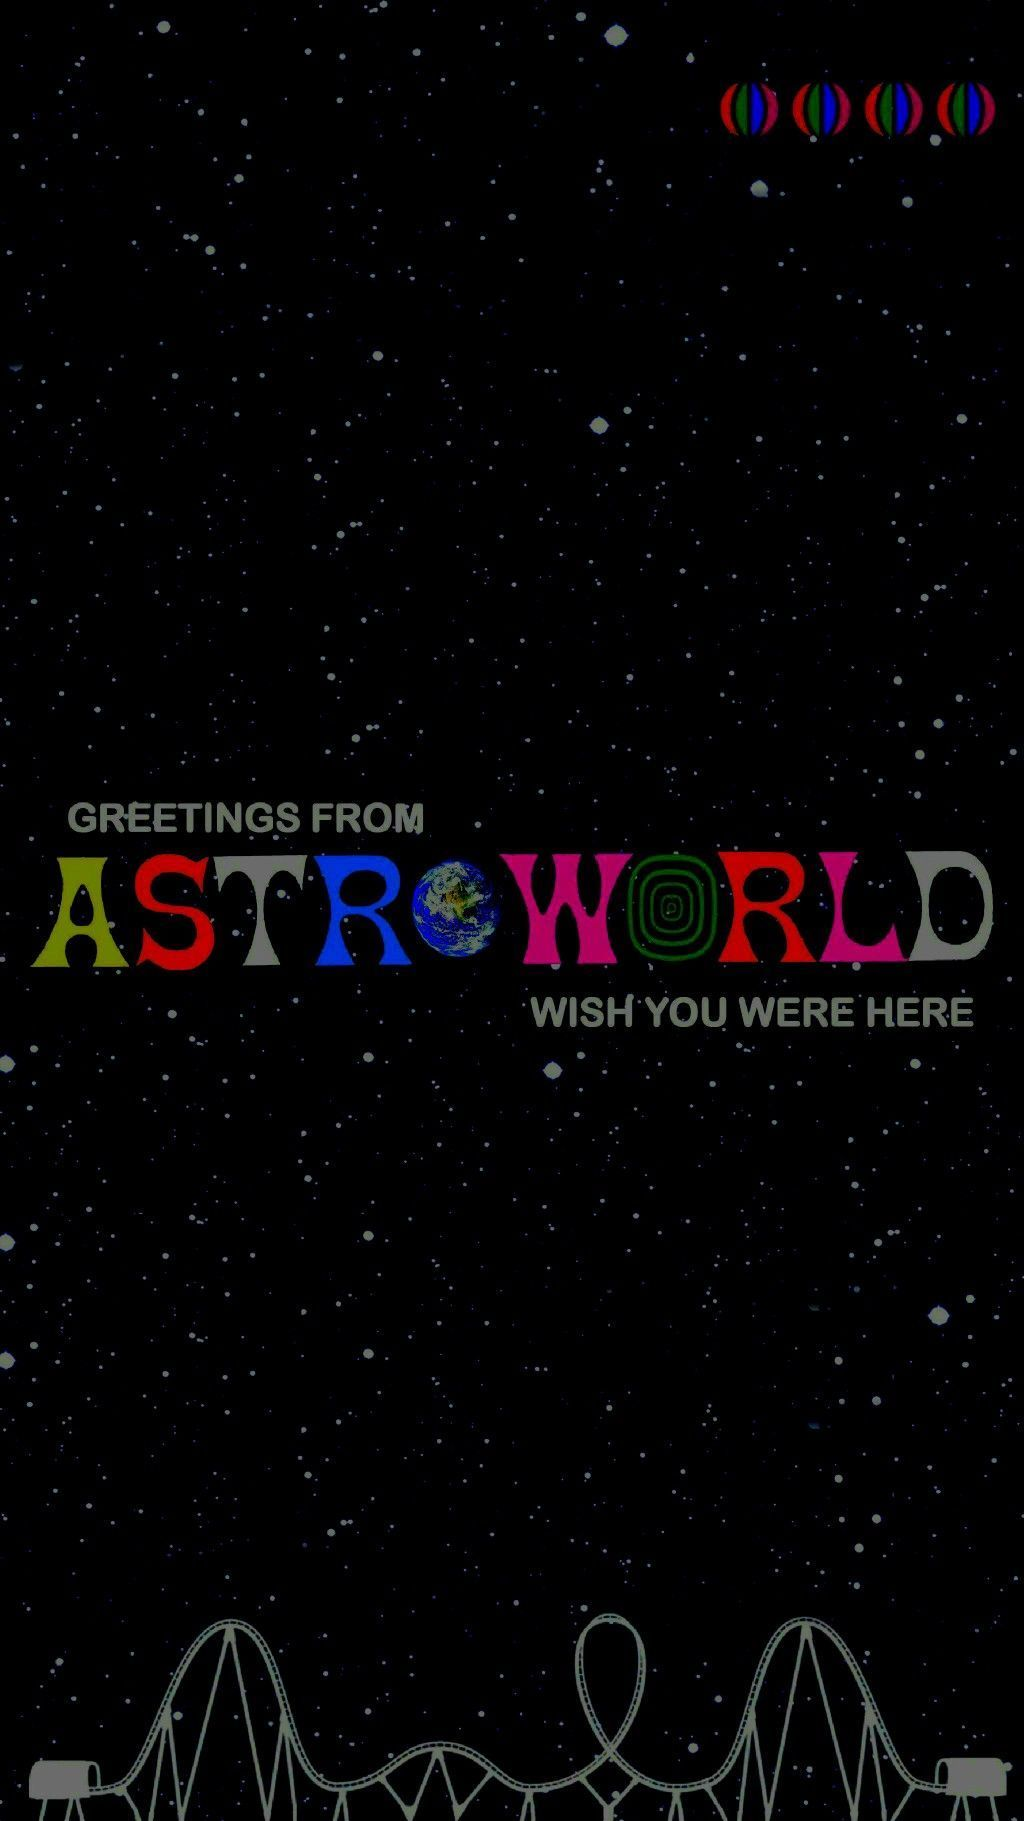 Astrowrld Fever Travisscottwallpapers Travis Scott In 2020 Edgy Wallpaper Travis Scott Iphone Wallpaper Hype Wallpaper